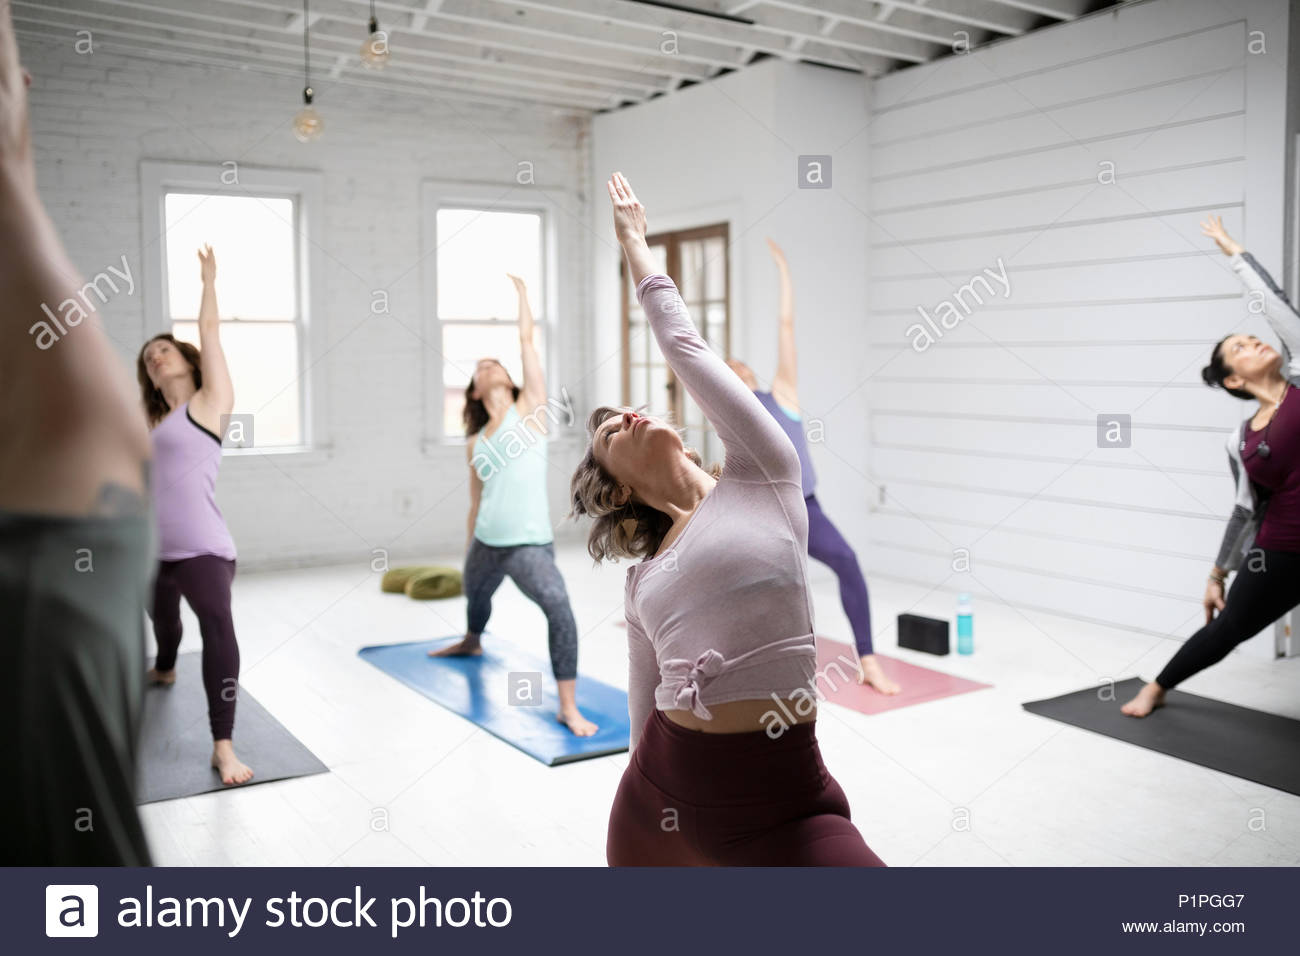 Women practicing yoga reverse warrior pose in yoga class - Stock Image